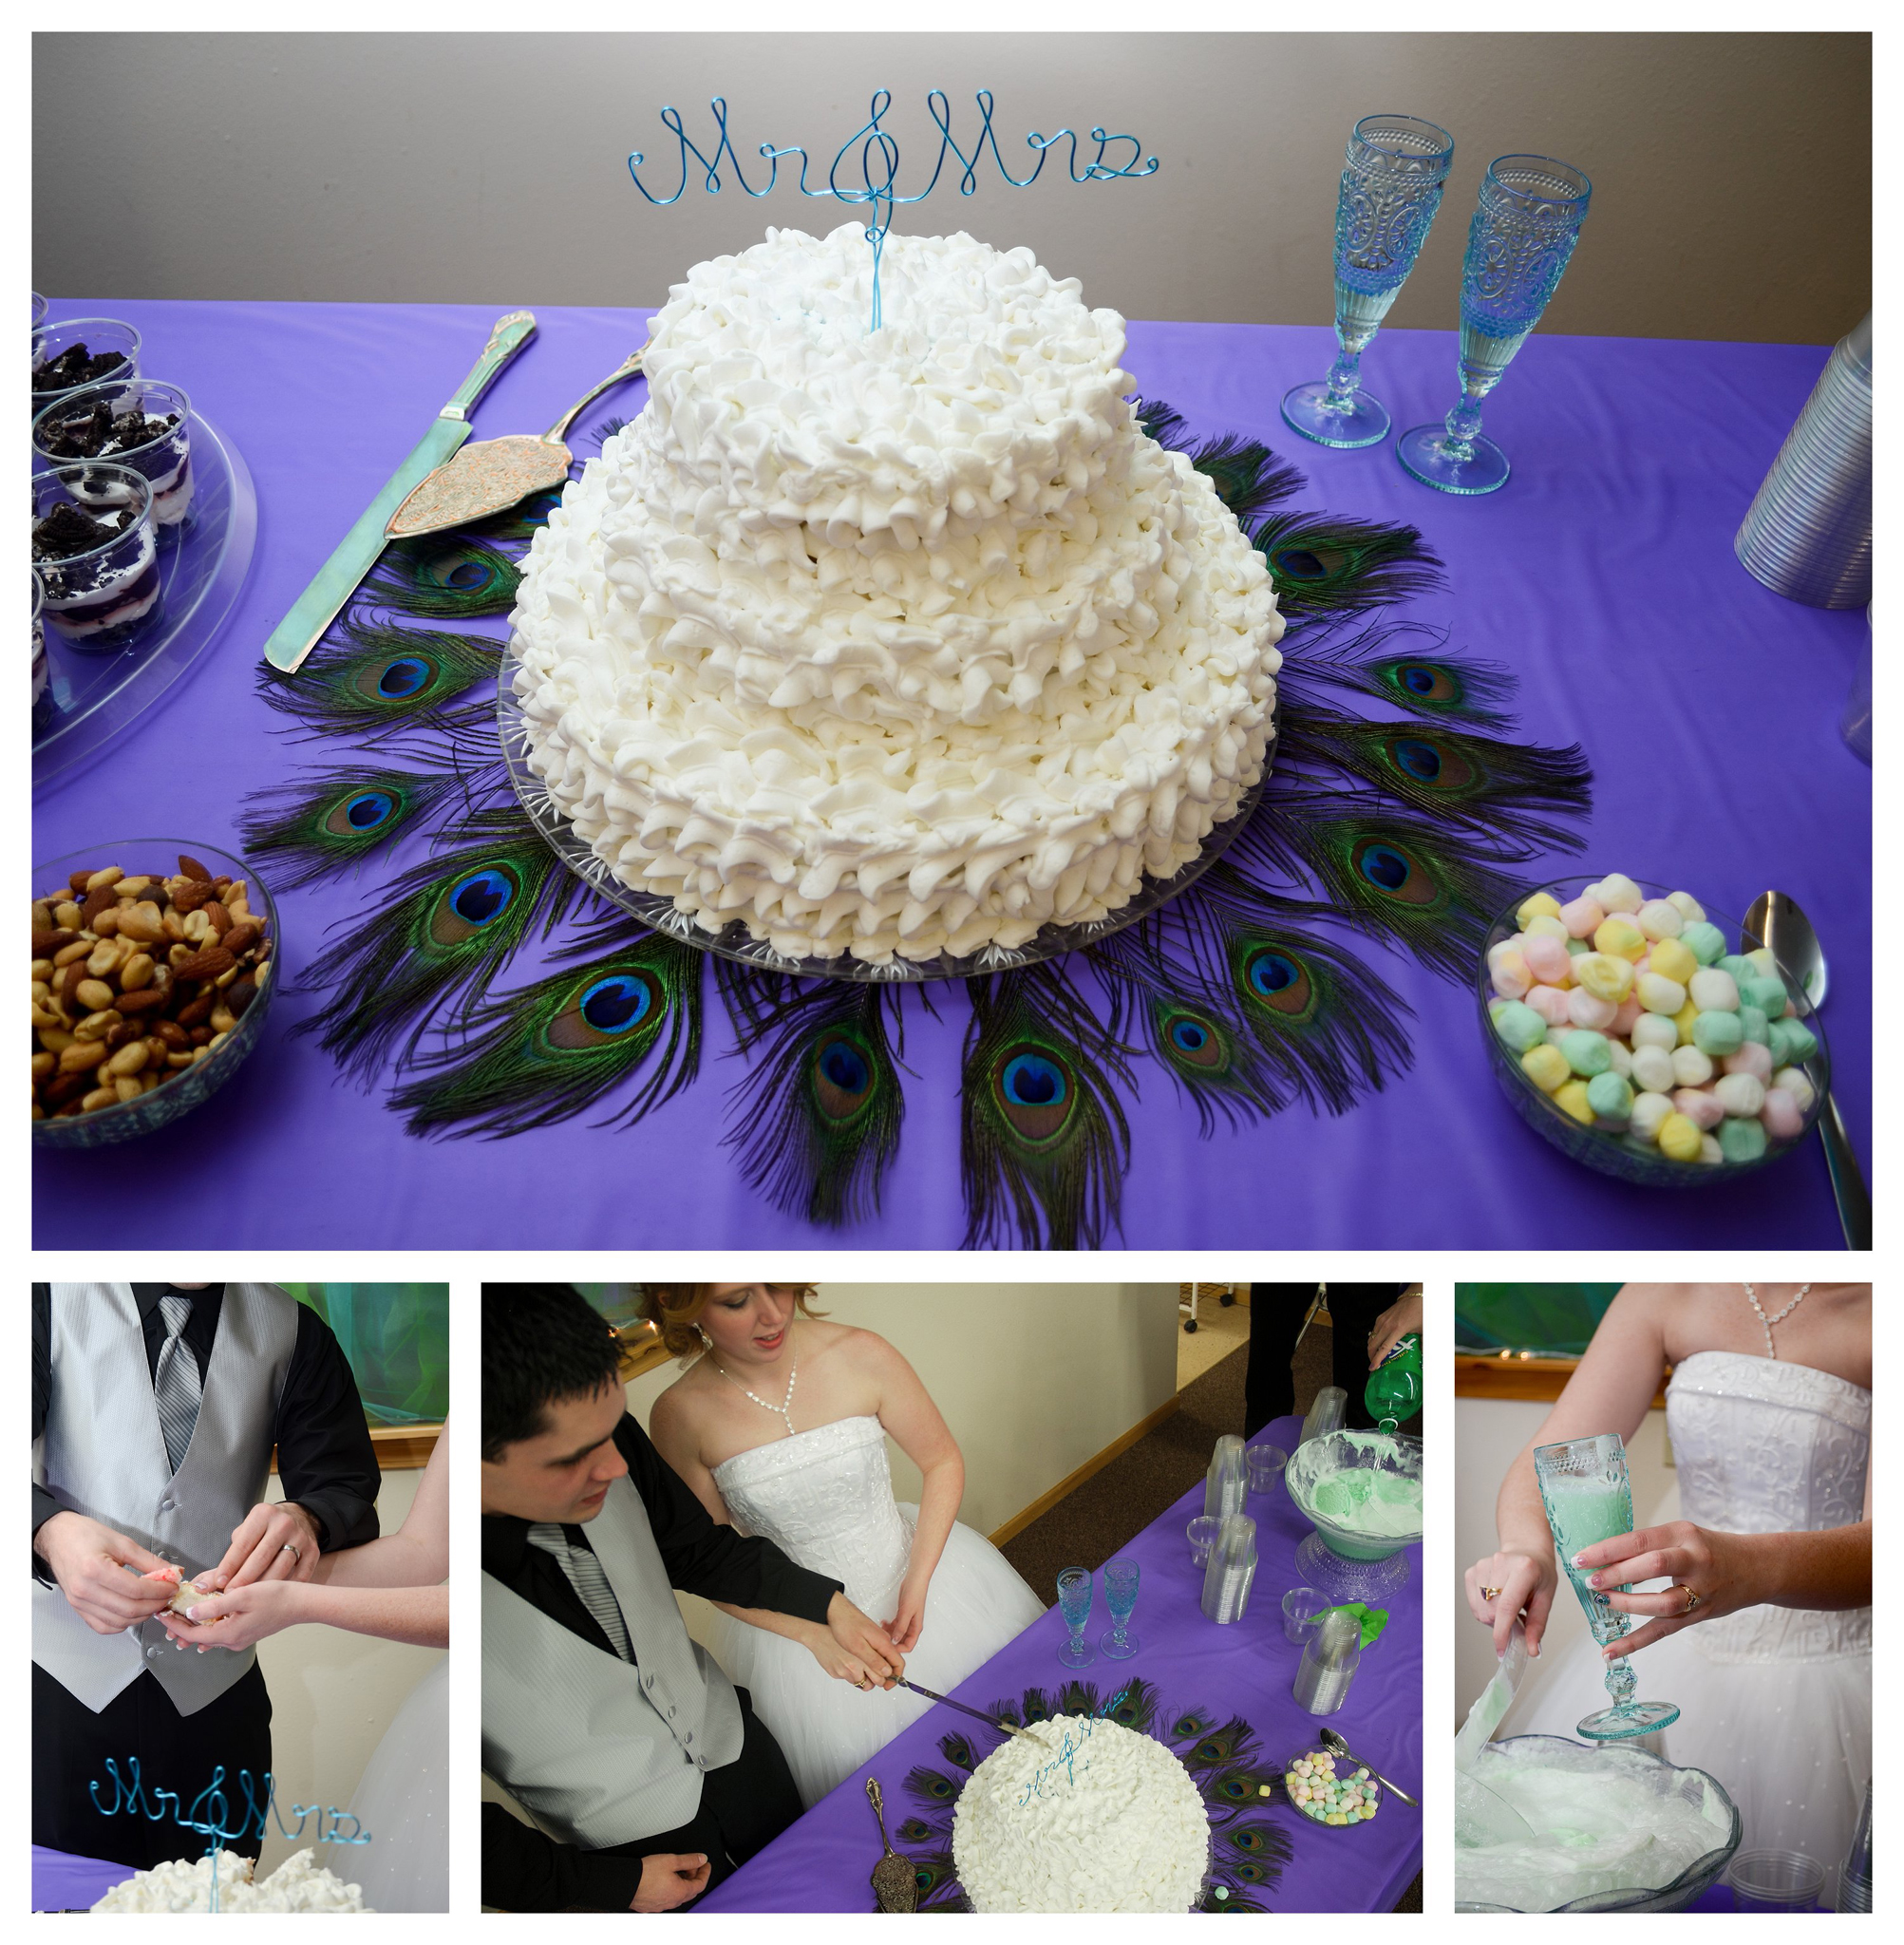 The Cake Wedding Photo by Johnson County Wedding Photographer Brittany Tarchala